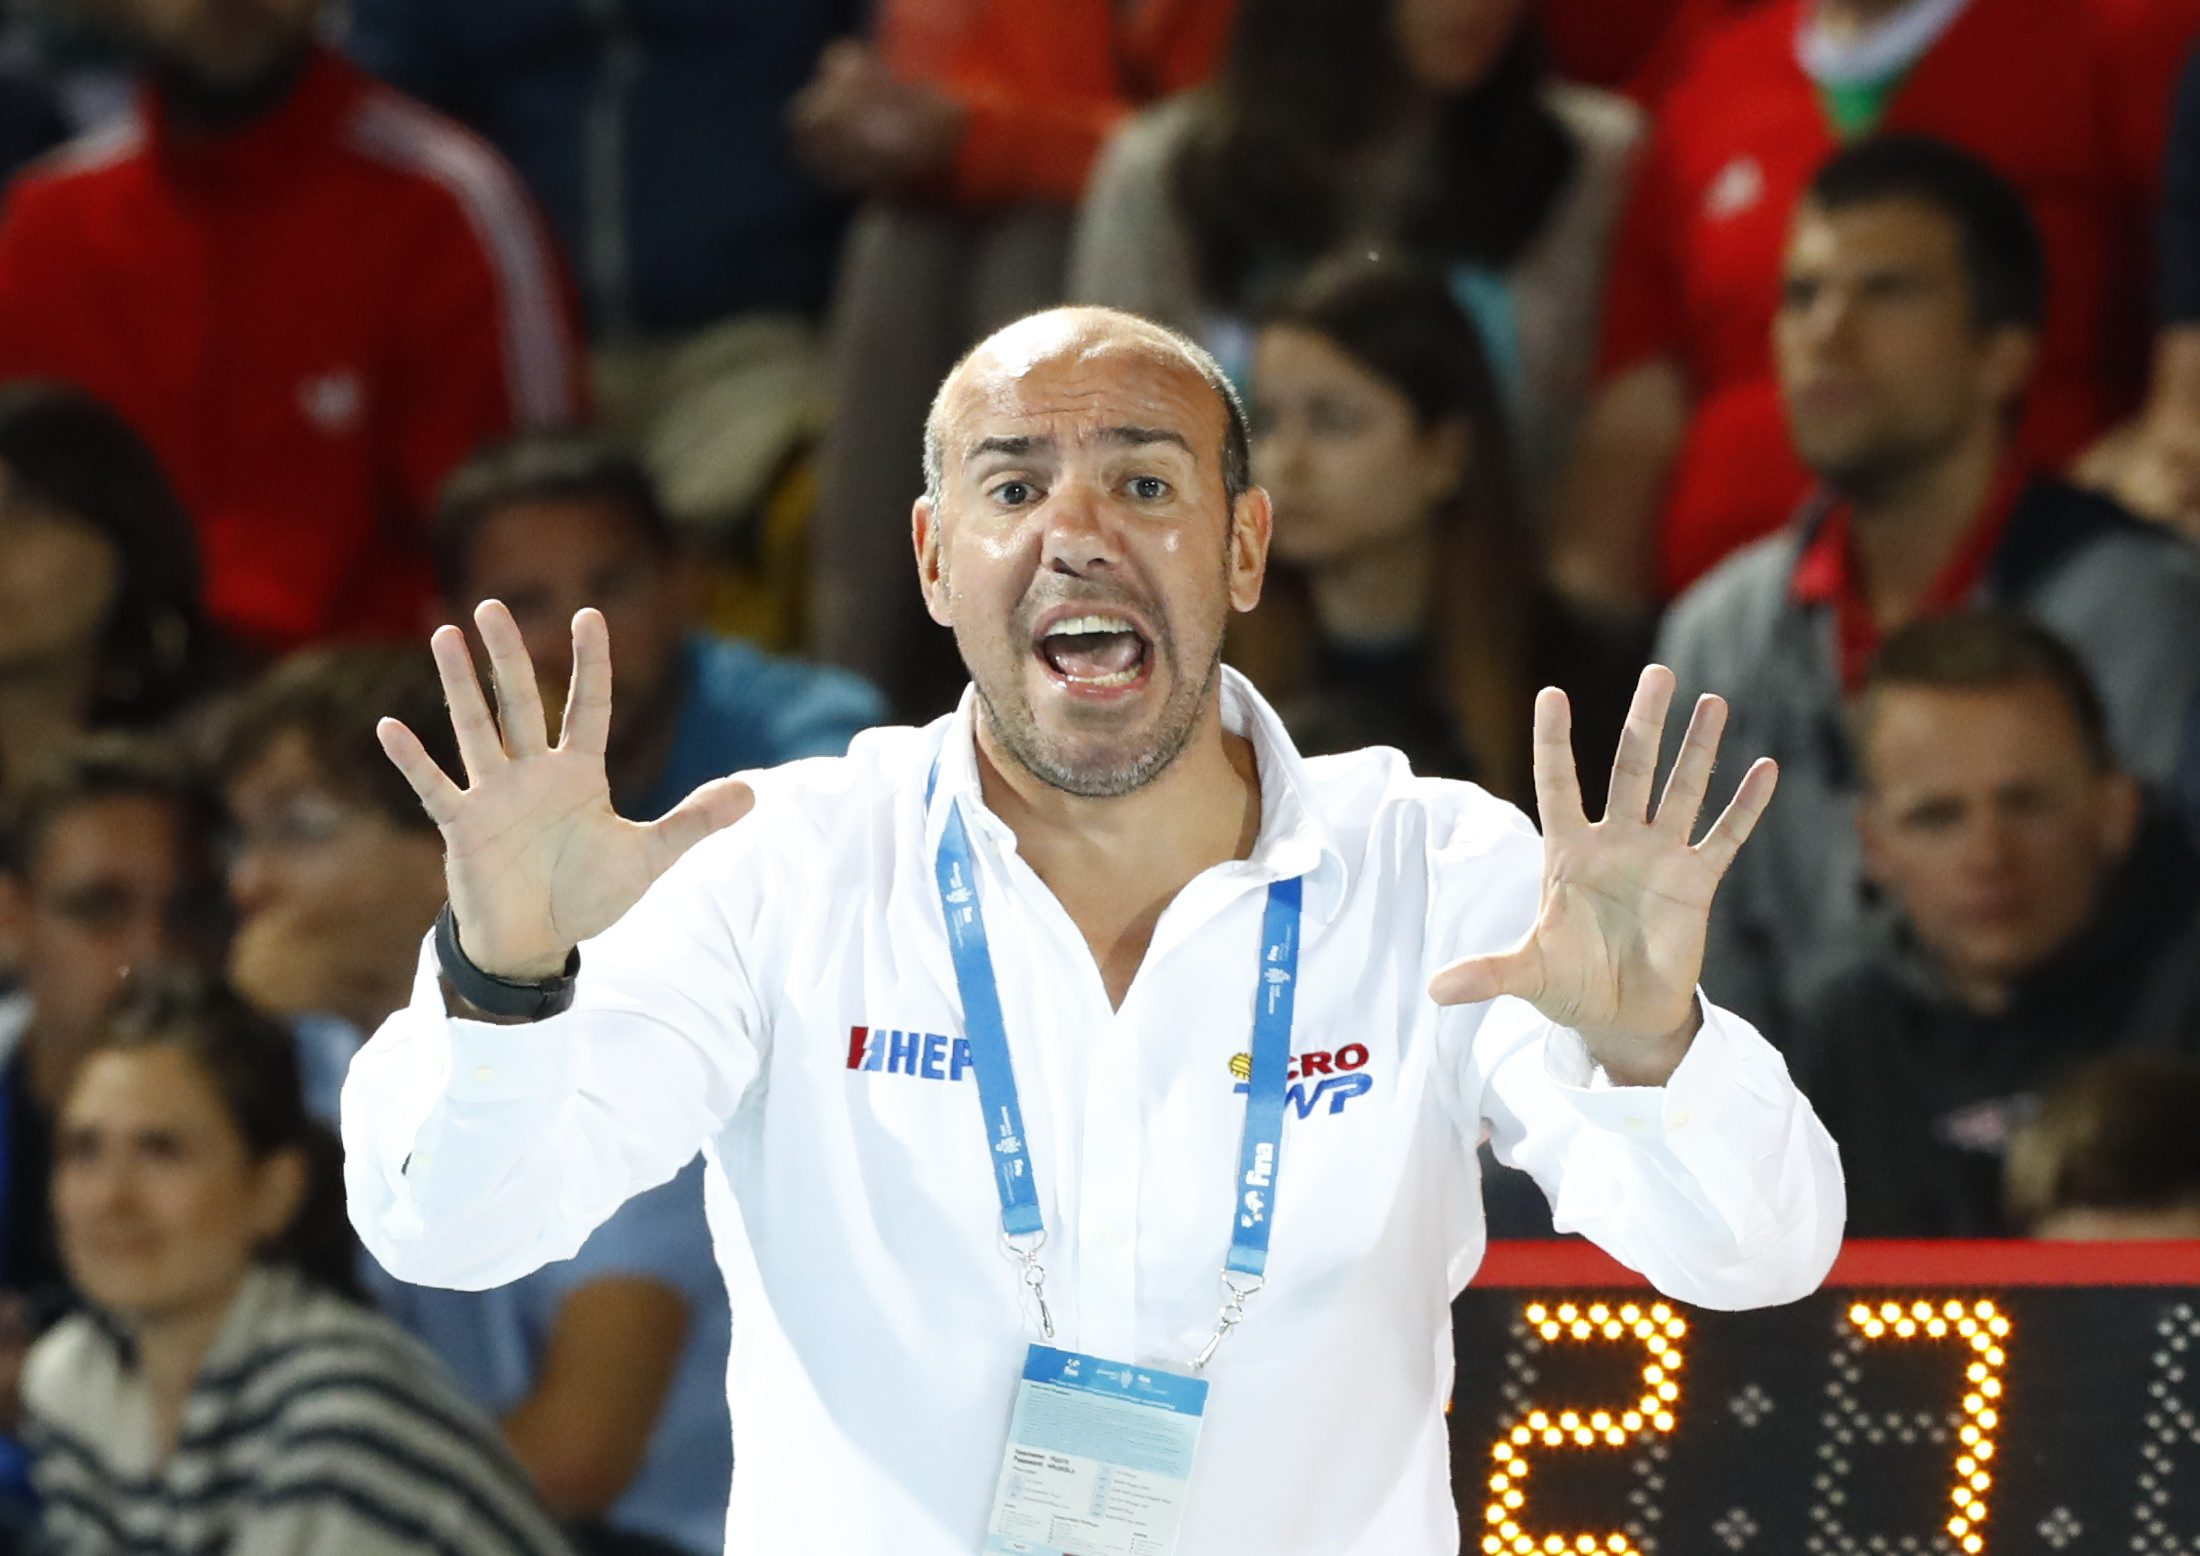 Water Polo Äi Serbia v Croatia Äi 17th FINA World Aquatics Championships Äi Men's Water Polo Semifinal Äi Budapest, Hungary Äi July 27, 2017 Äi Ivica Tucak, head coach of Croatia reacts. REUTERS/Mate Balogh